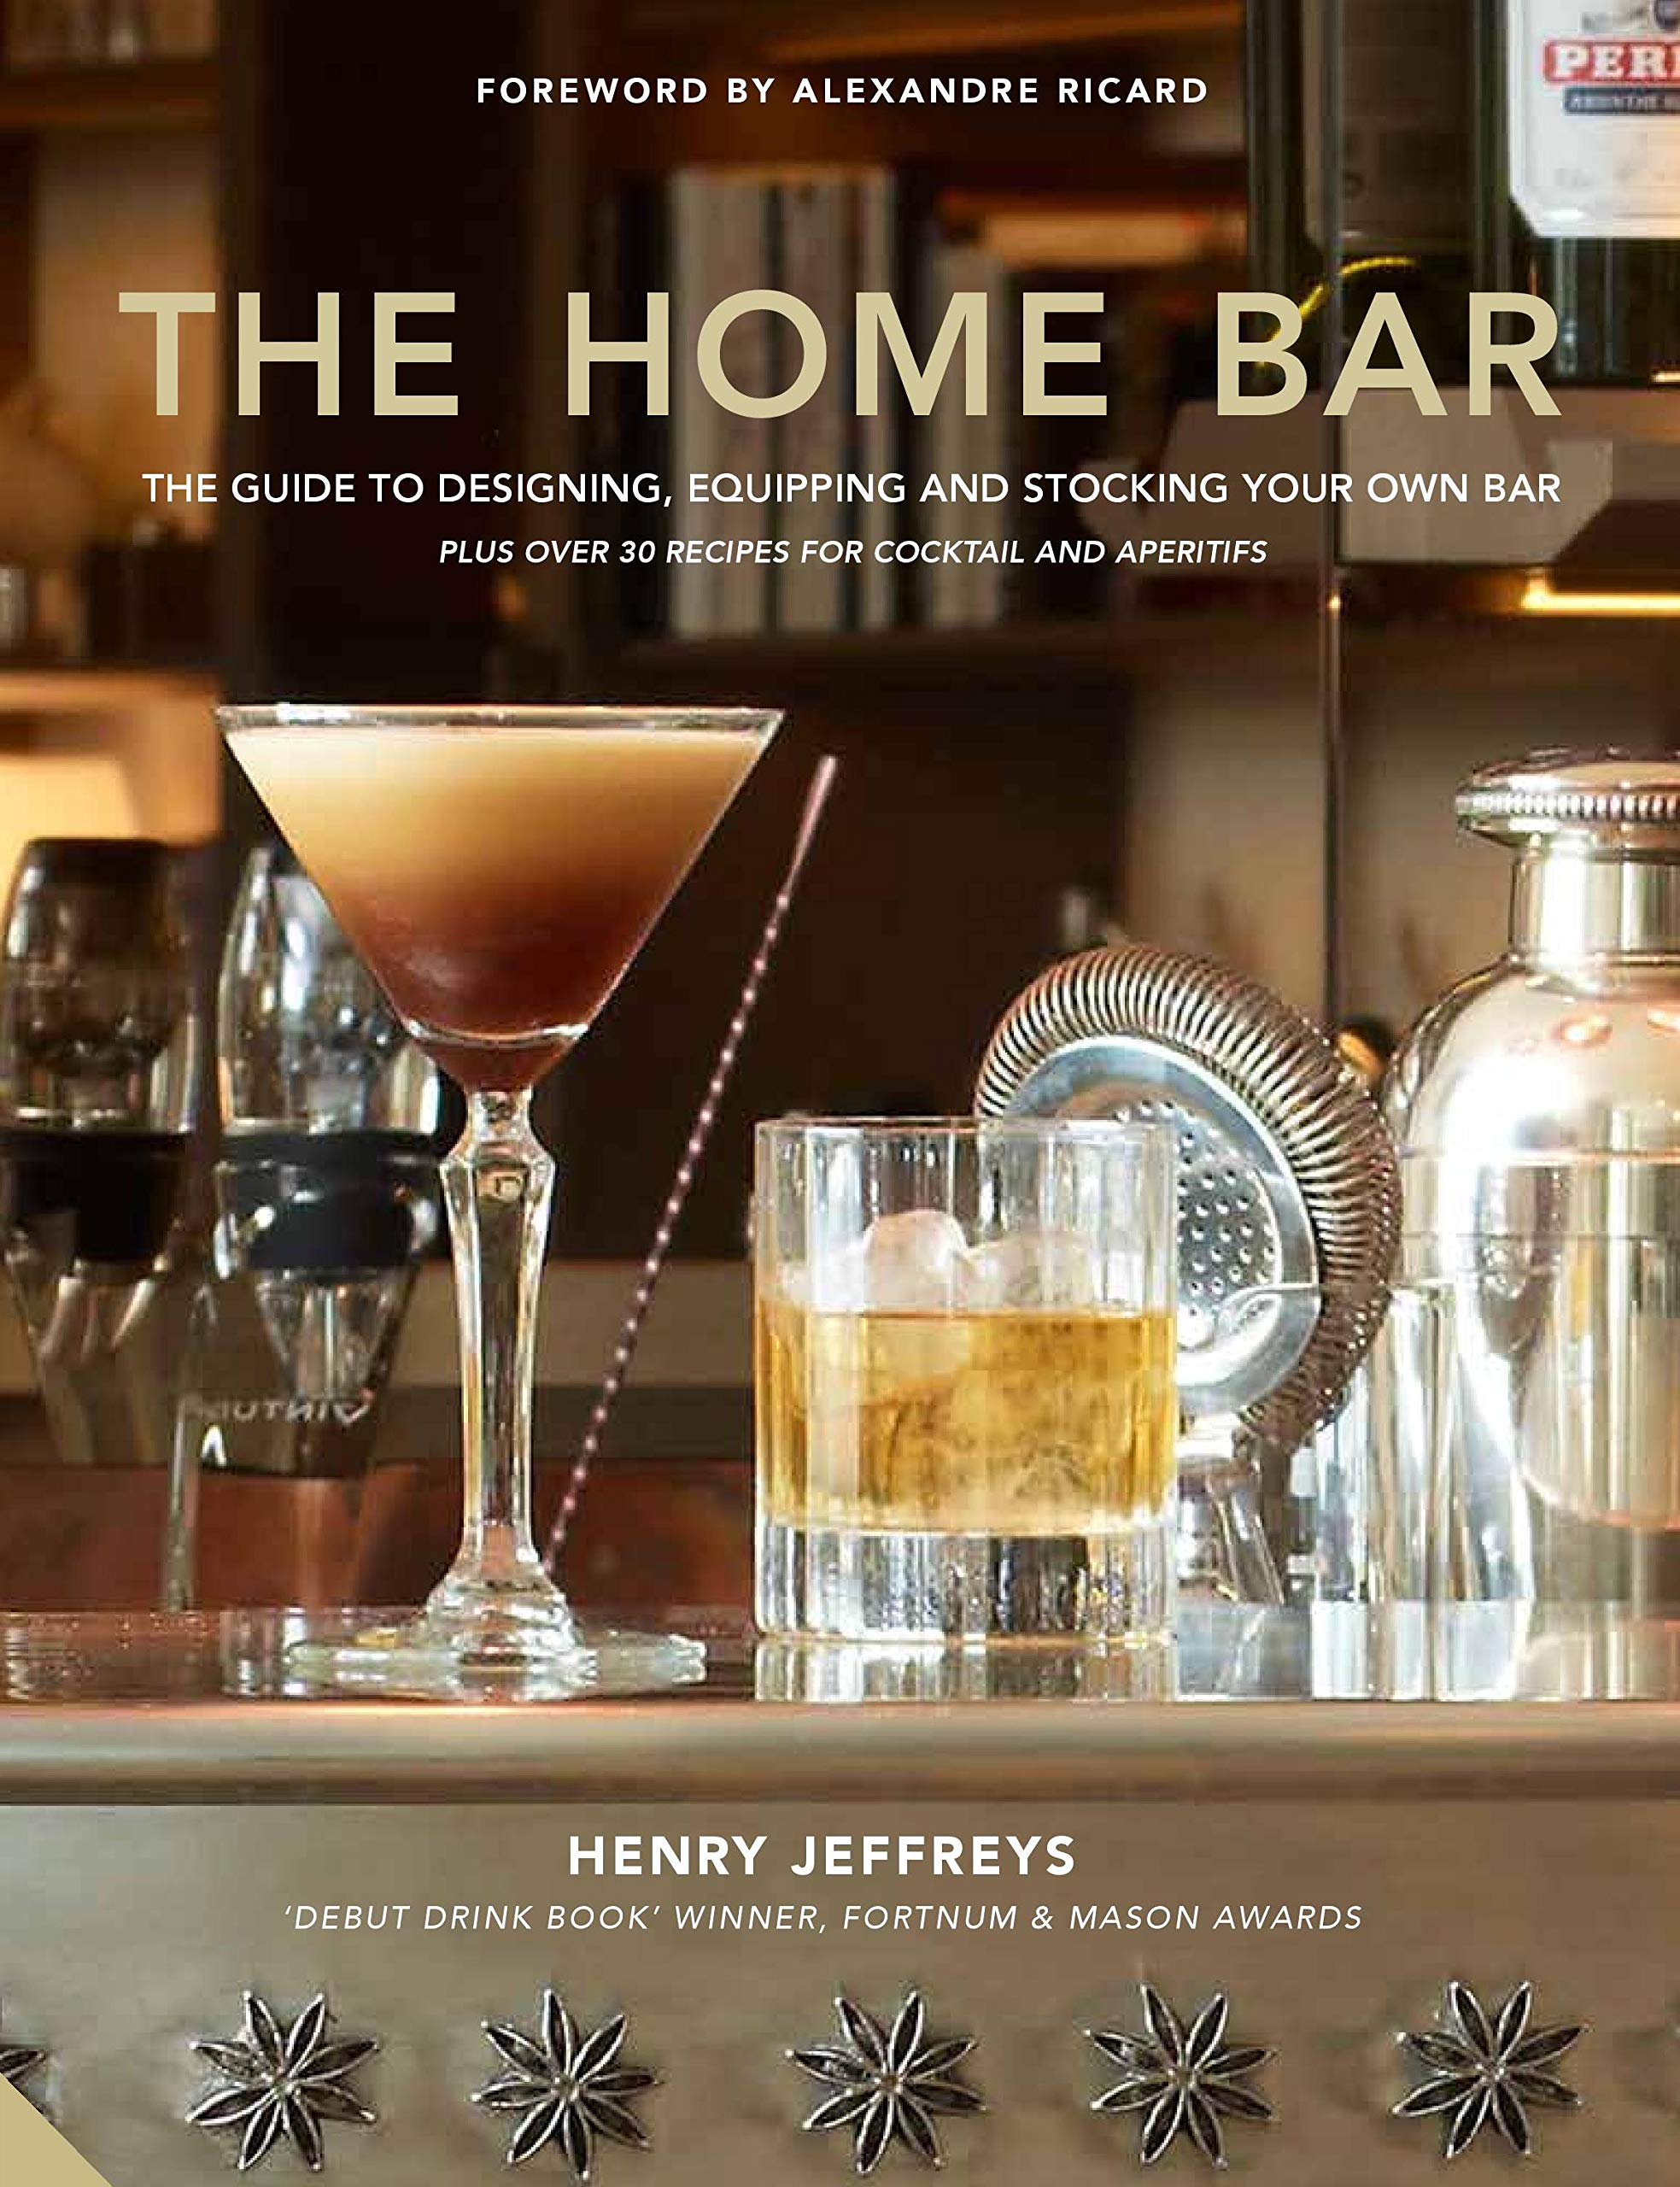 The Home Bar: From Simple Bar Carts To The Ultimate In Home Bar Design And Drinks